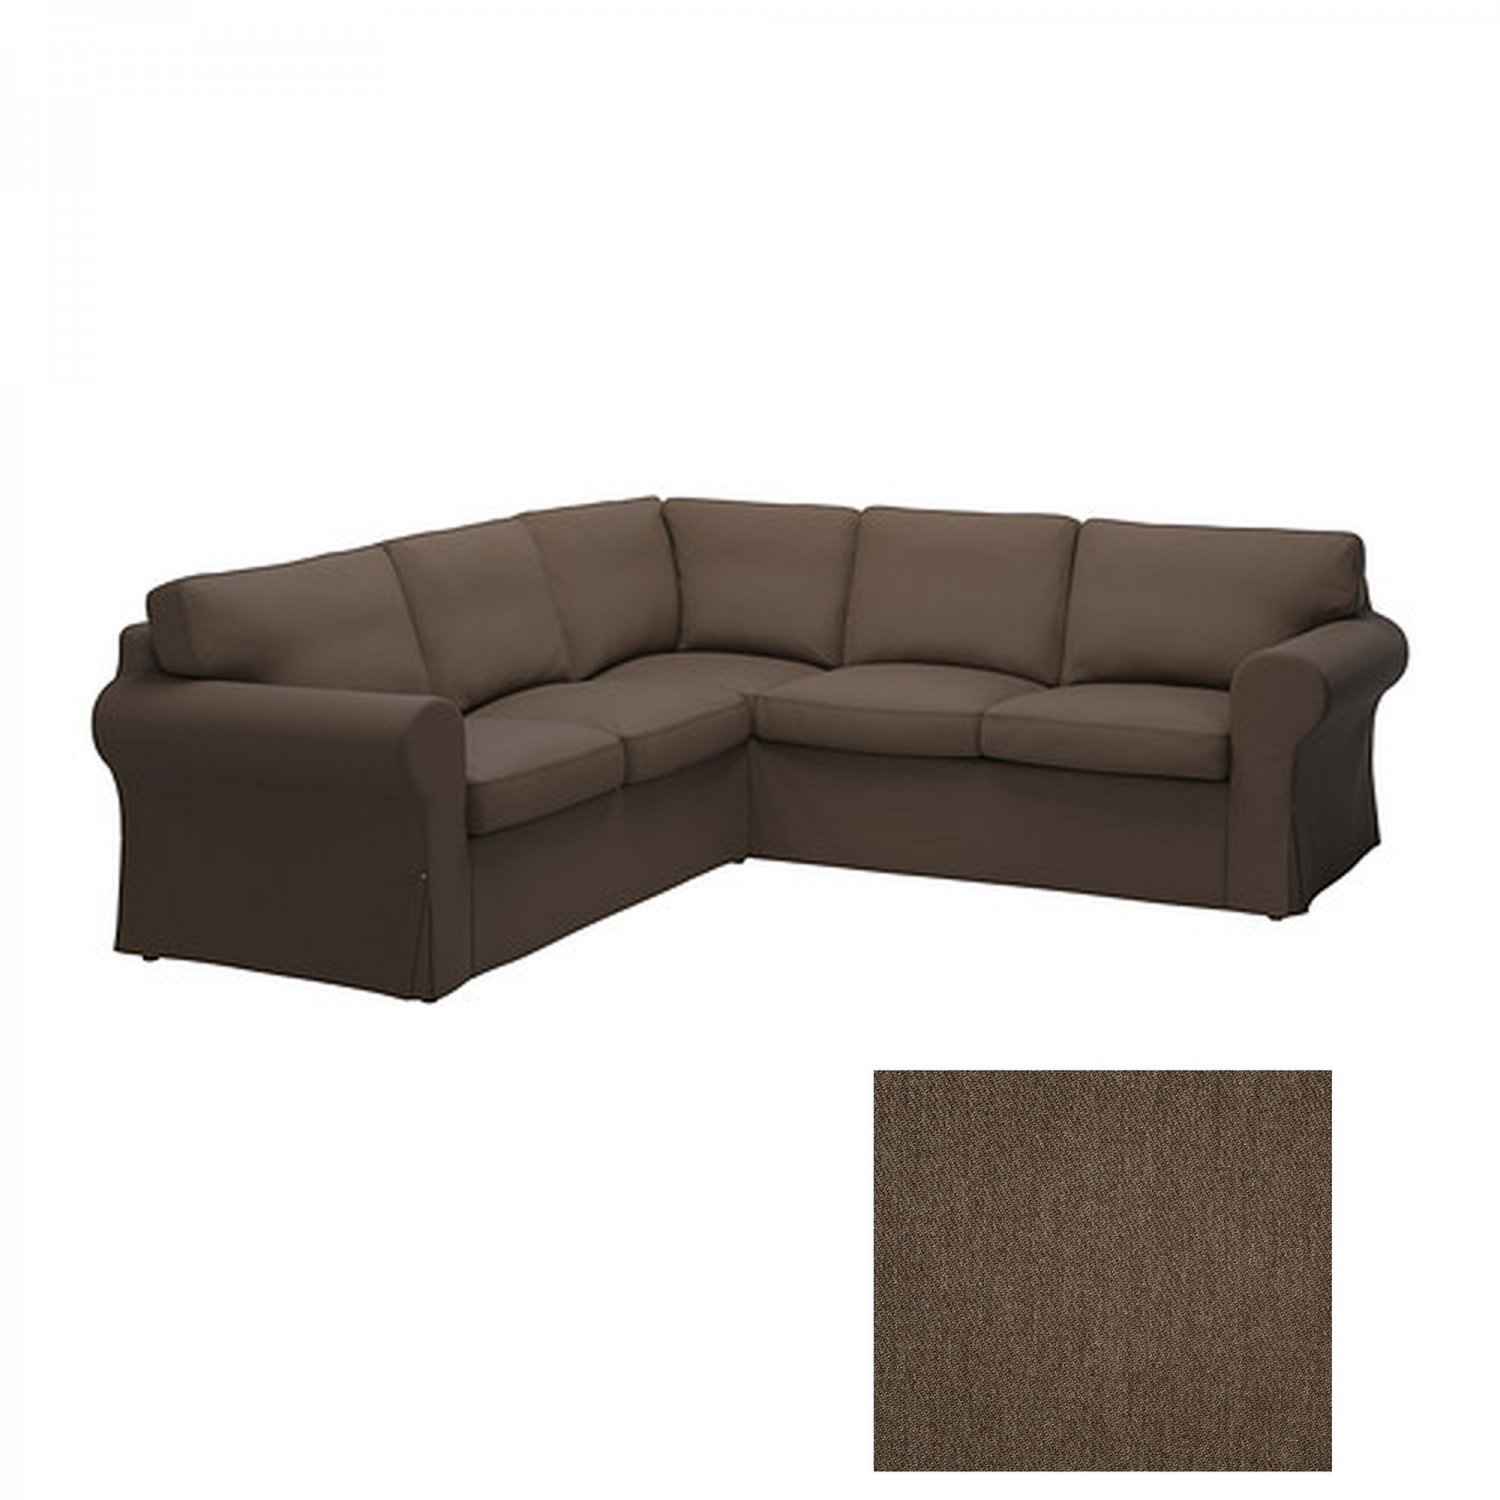 ikea ektorp 2 2 corner sofa cover slipcover jonsboda brown. Black Bedroom Furniture Sets. Home Design Ideas